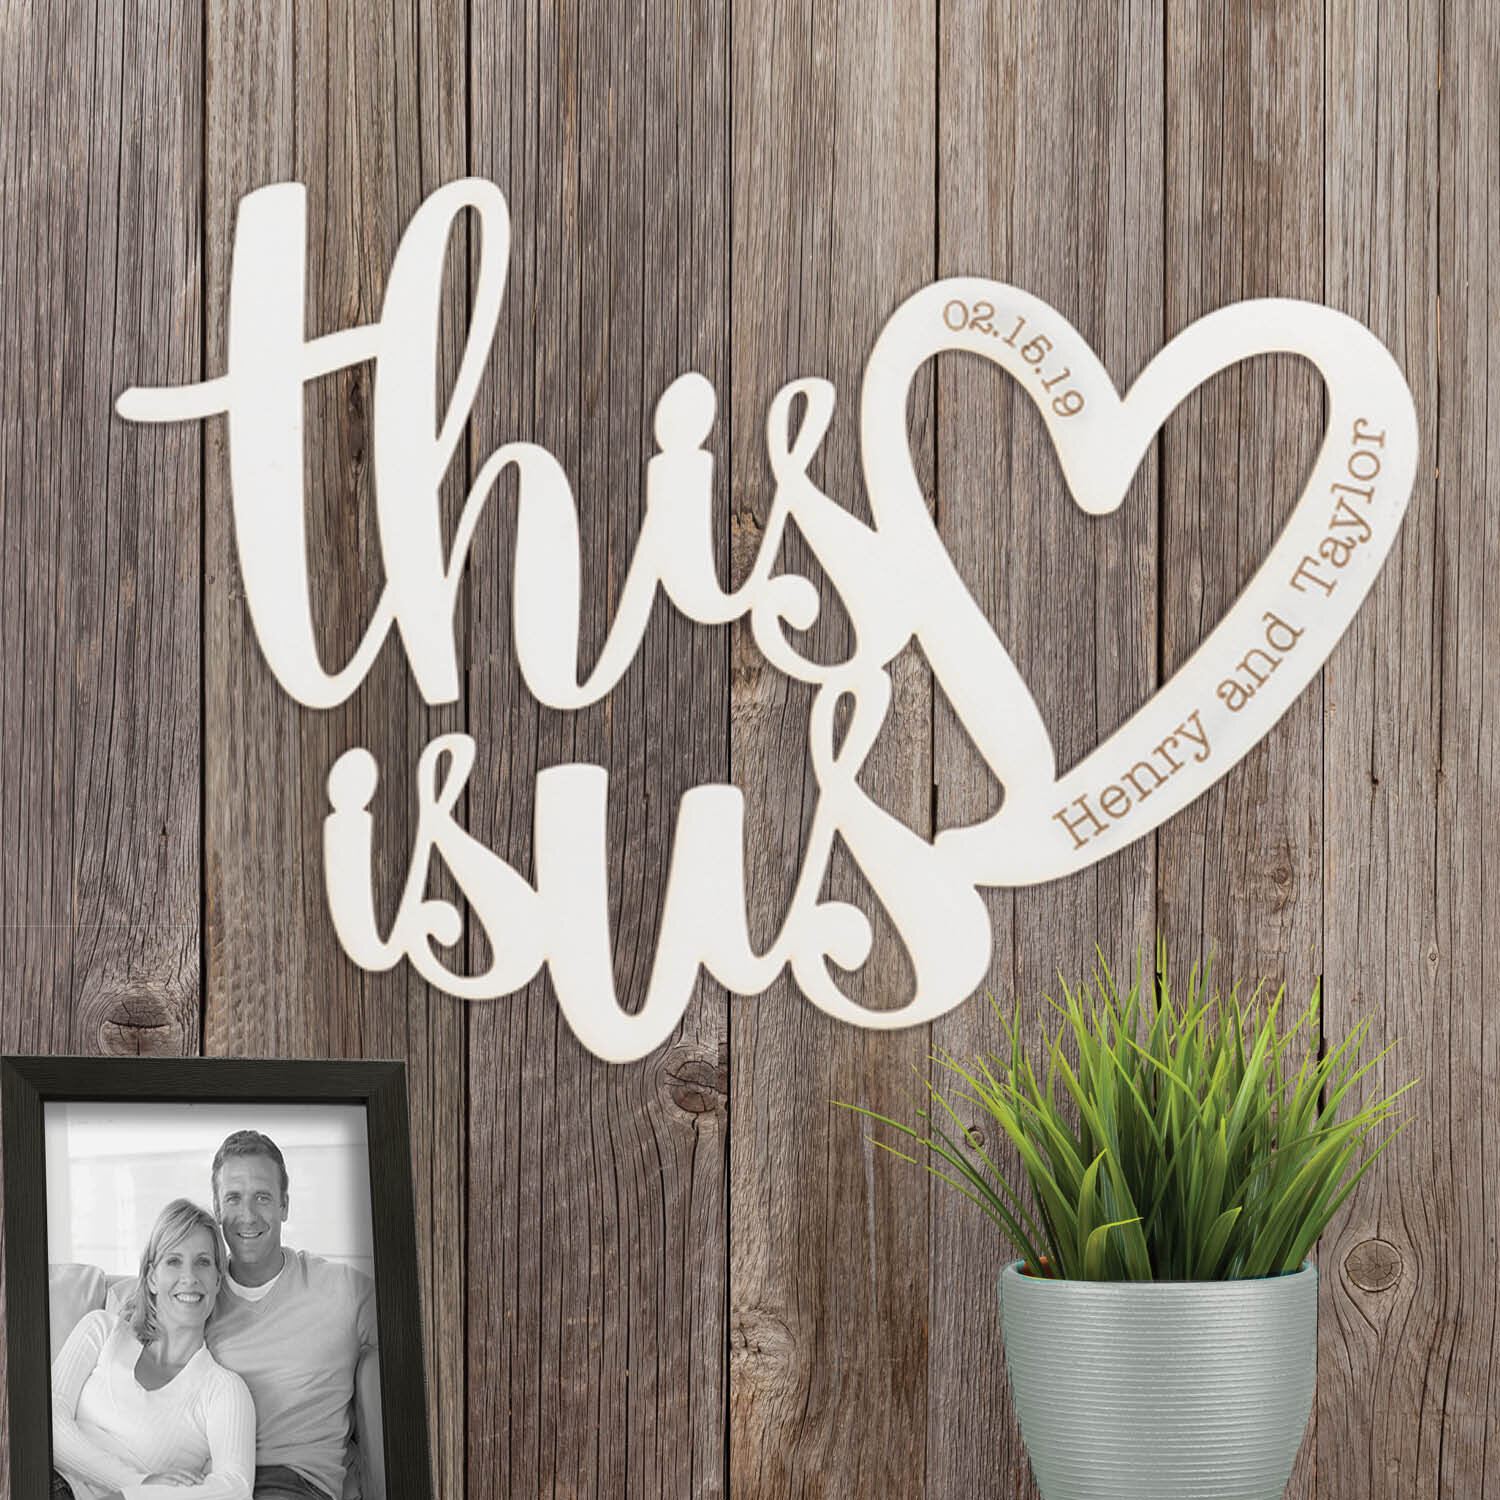 This Is Us Personalized Wood Plaque Wall Décor Pertaining To This Is Us Wall Decor (View 13 of 30)